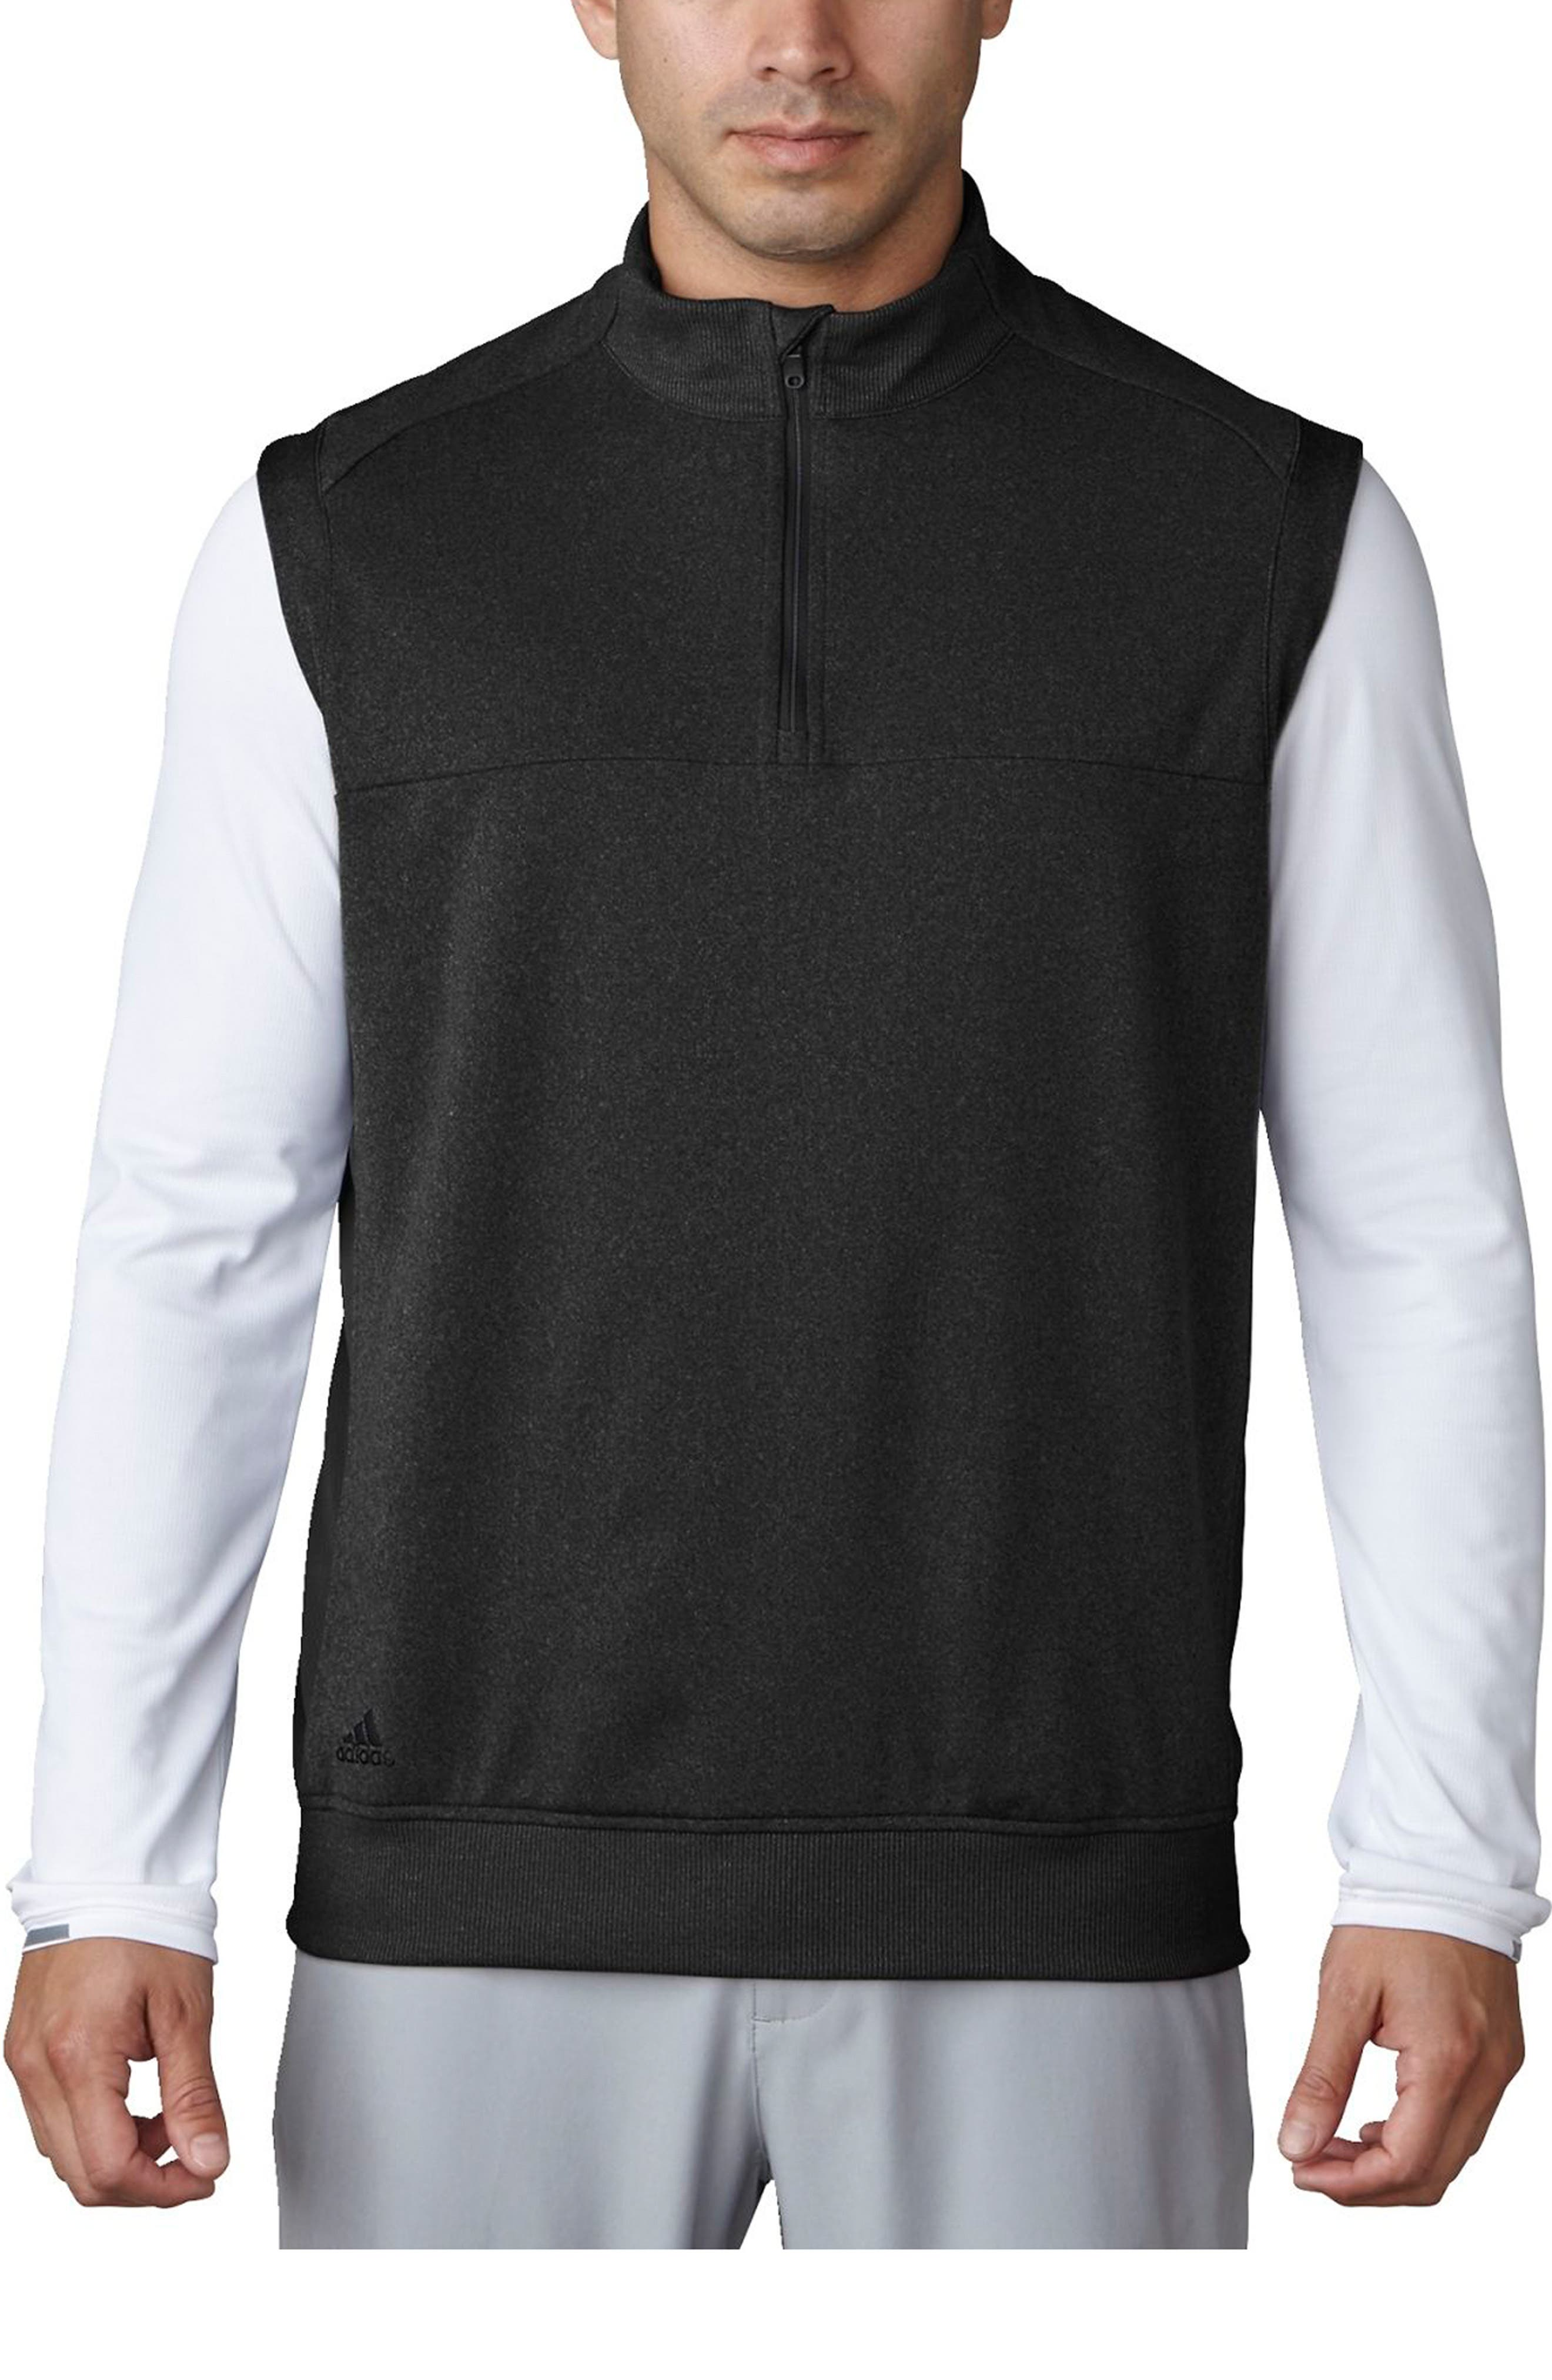 Club Quarter Zip Pullover Vest,                         Main,                         color, 015